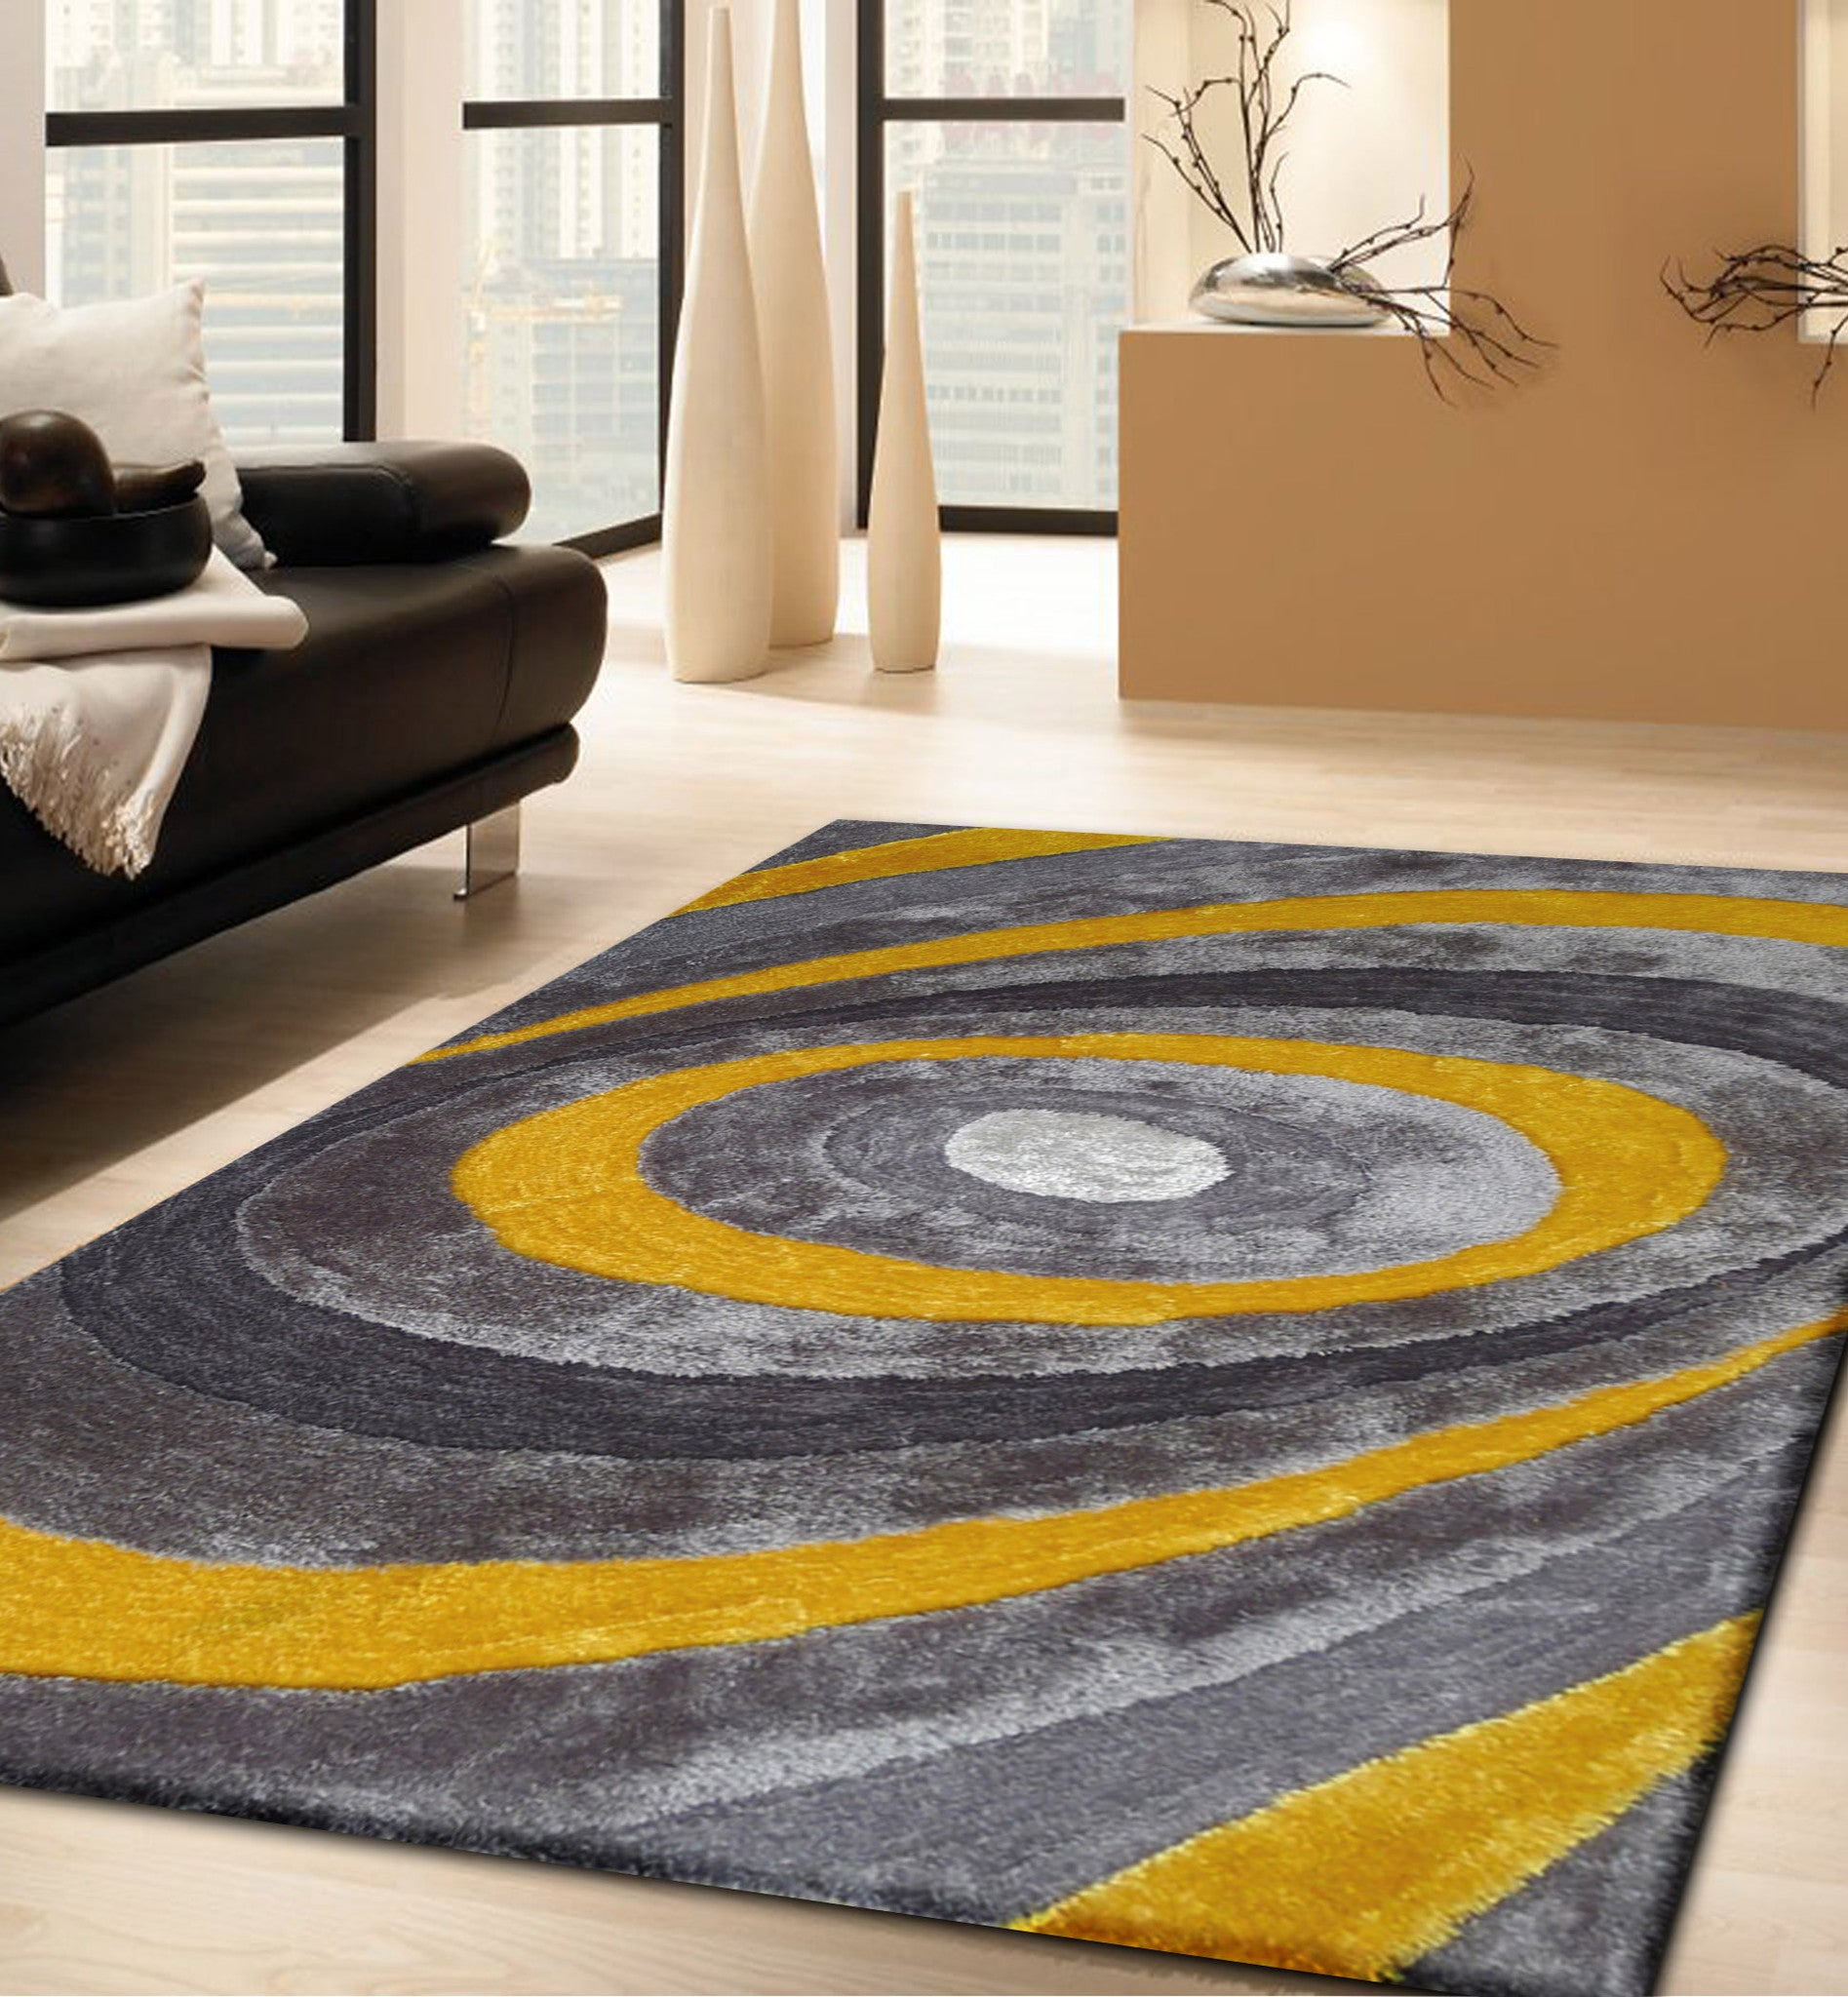 florida and home pictures area wayfair gallery grey reviews rugs world thousands cream yellow rug furnishing gray of